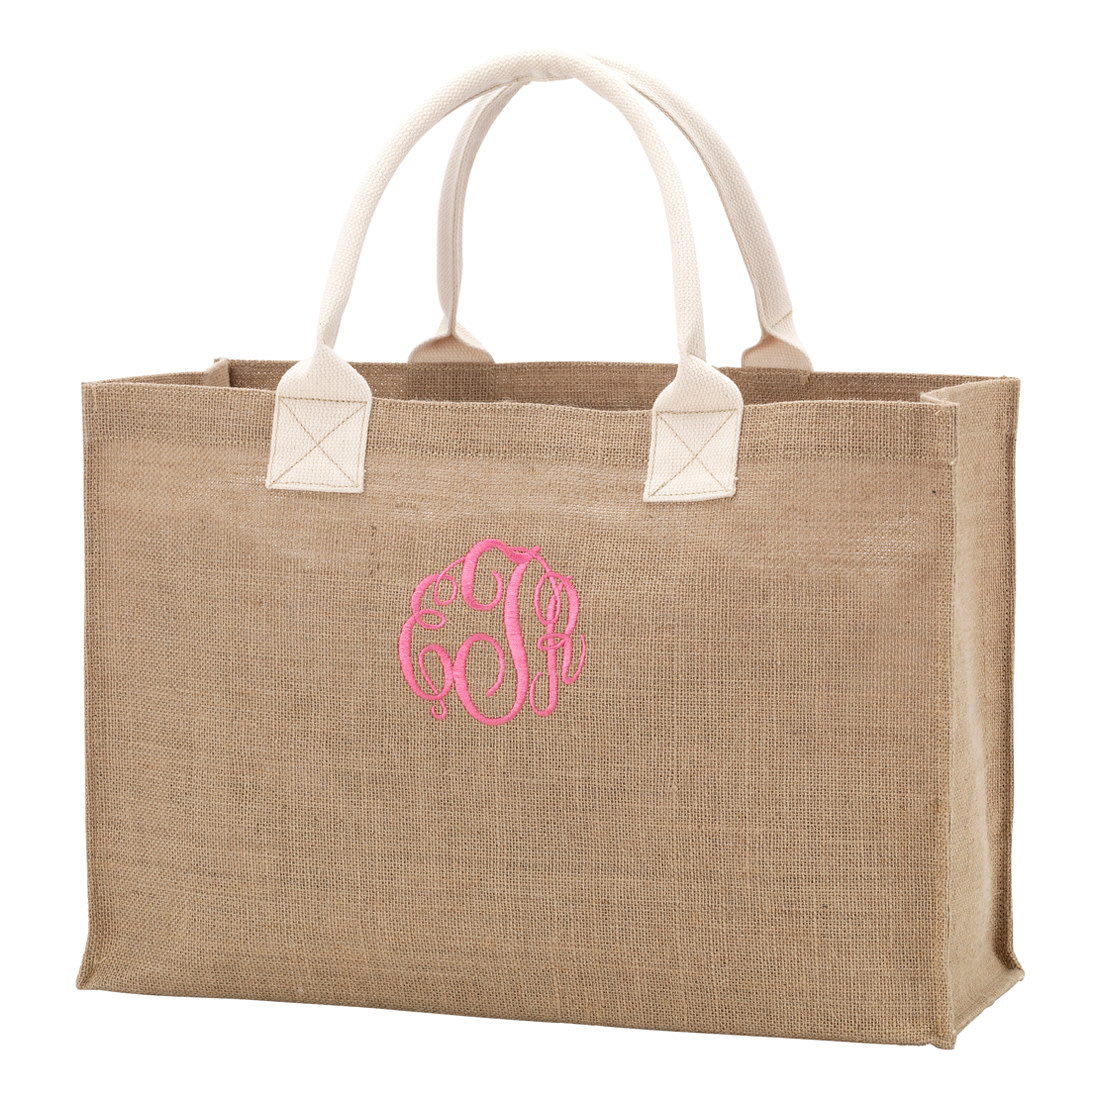 Monogrammed Burlap Tote Bag Embroidery Personalization Included